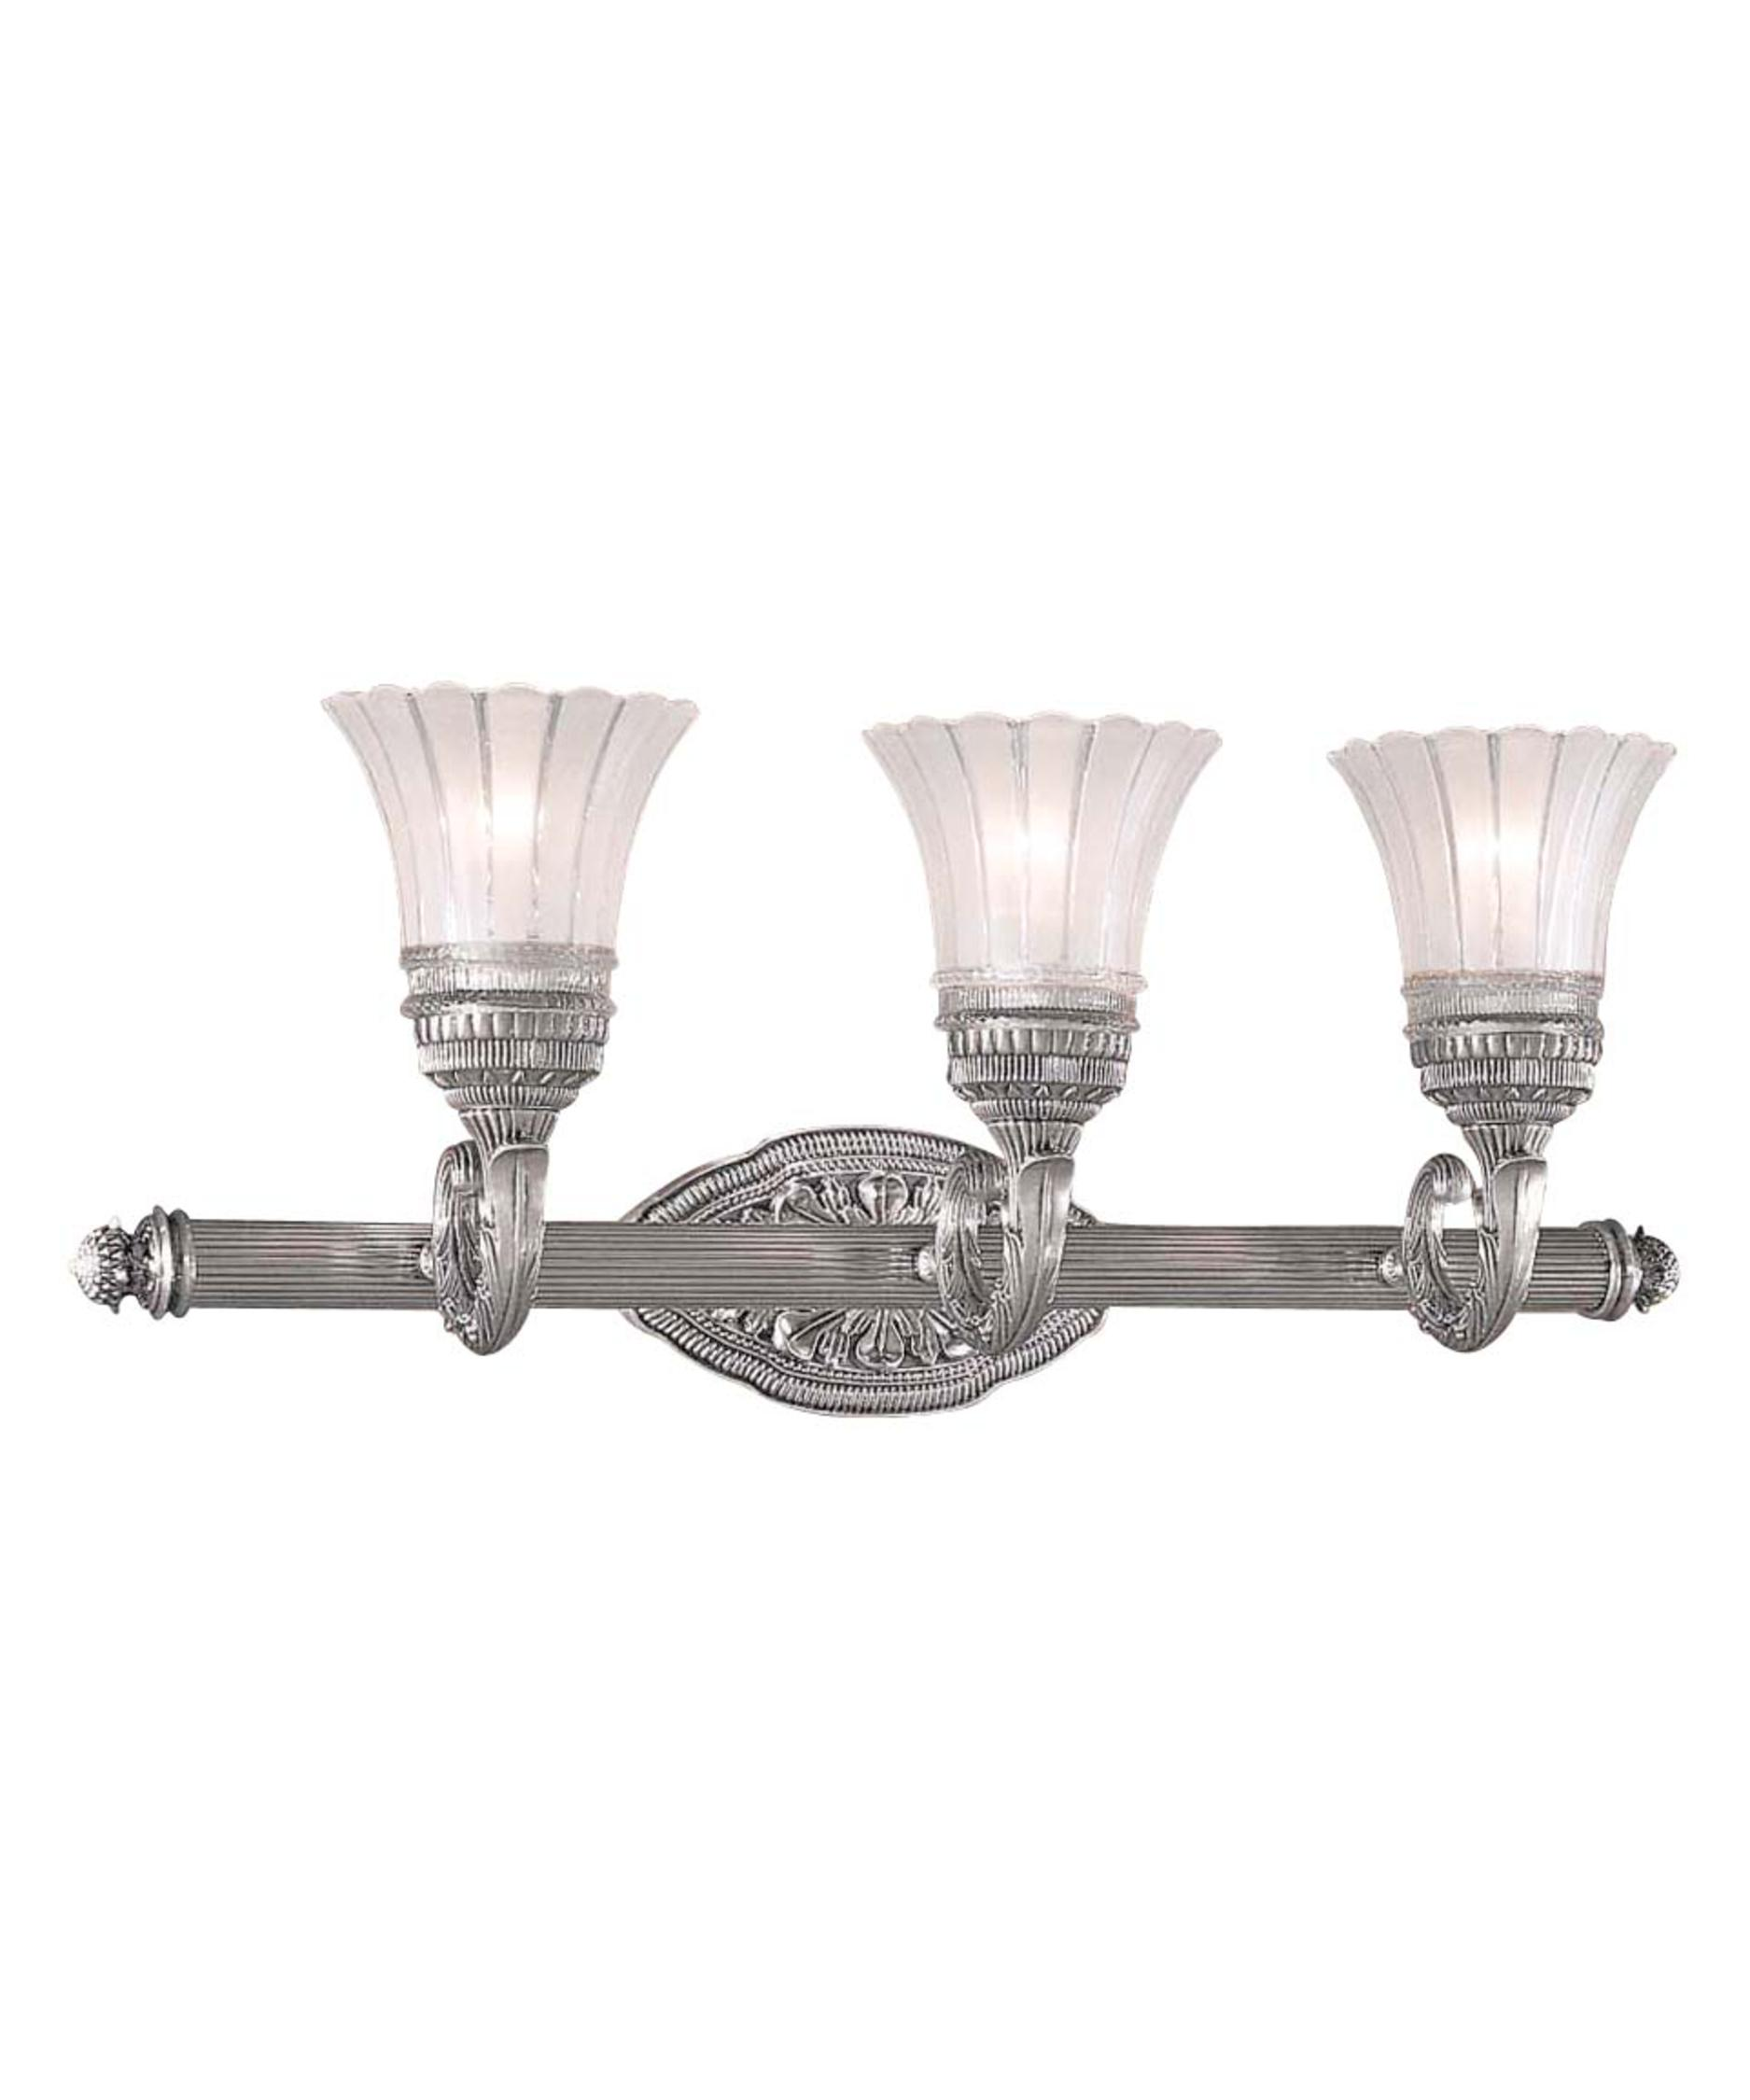 Minka Lavery Bathroom Lighting minka lavery 5763 europa 26 inch wide bath vanity light | capitol